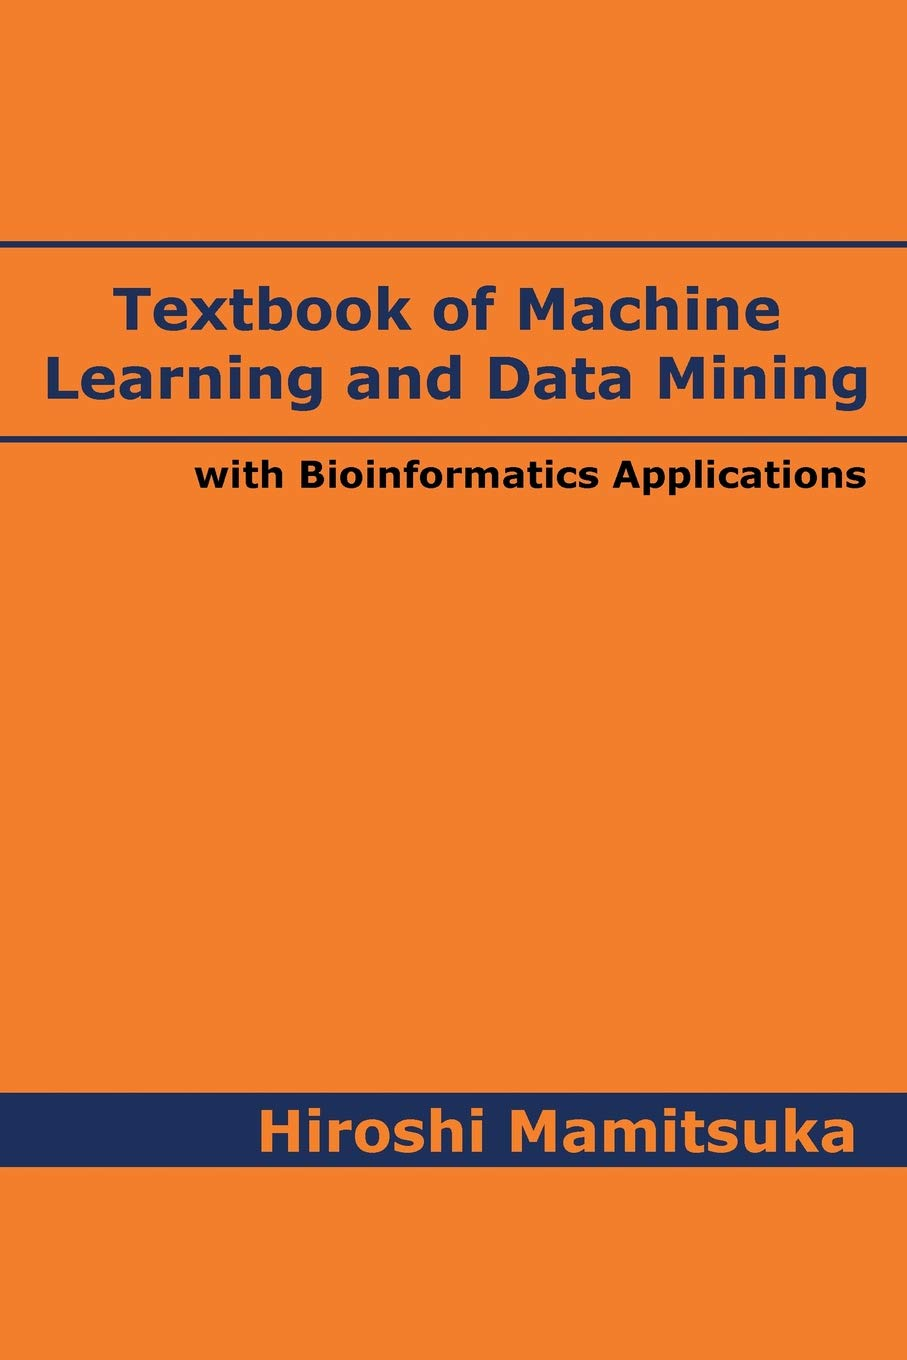 Textbook of Machine Learning and Data Mining: with Bioinformatics Applications